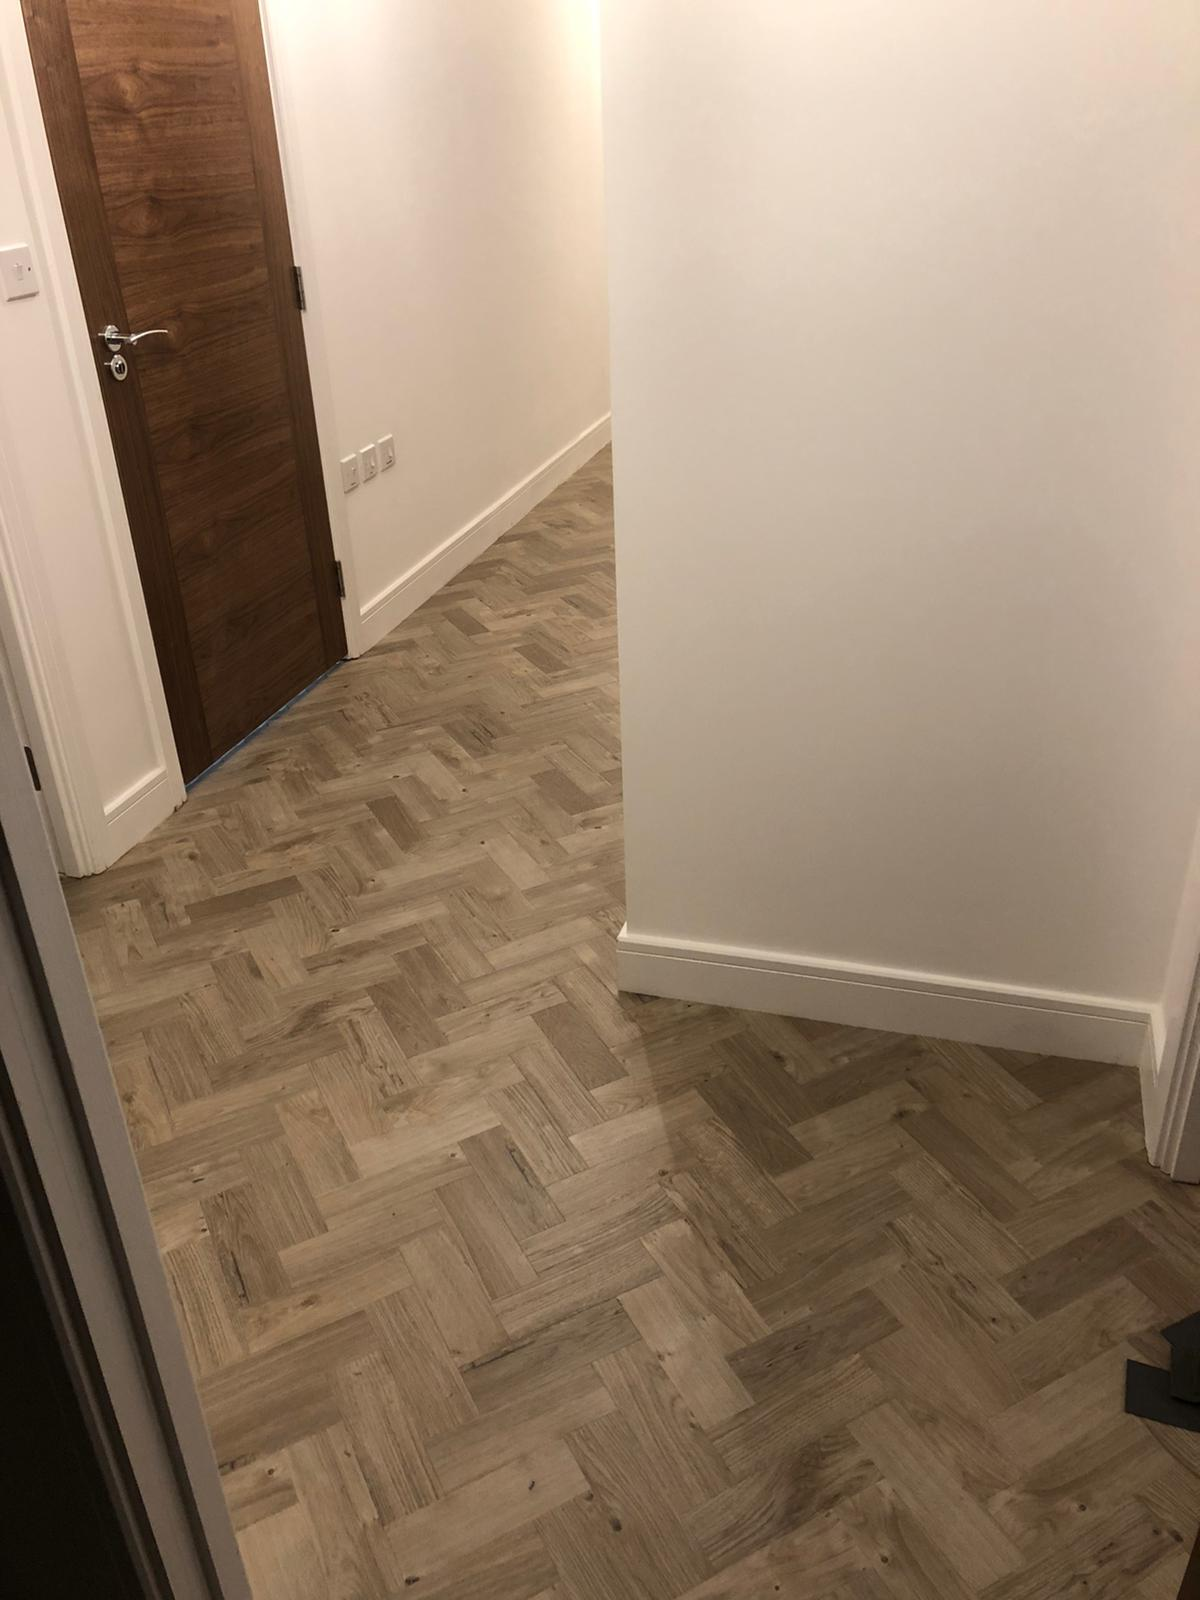 To supply & install Amtico Spacia Sun Bleached Oak luxury vinyl flooring in Kilburn 1